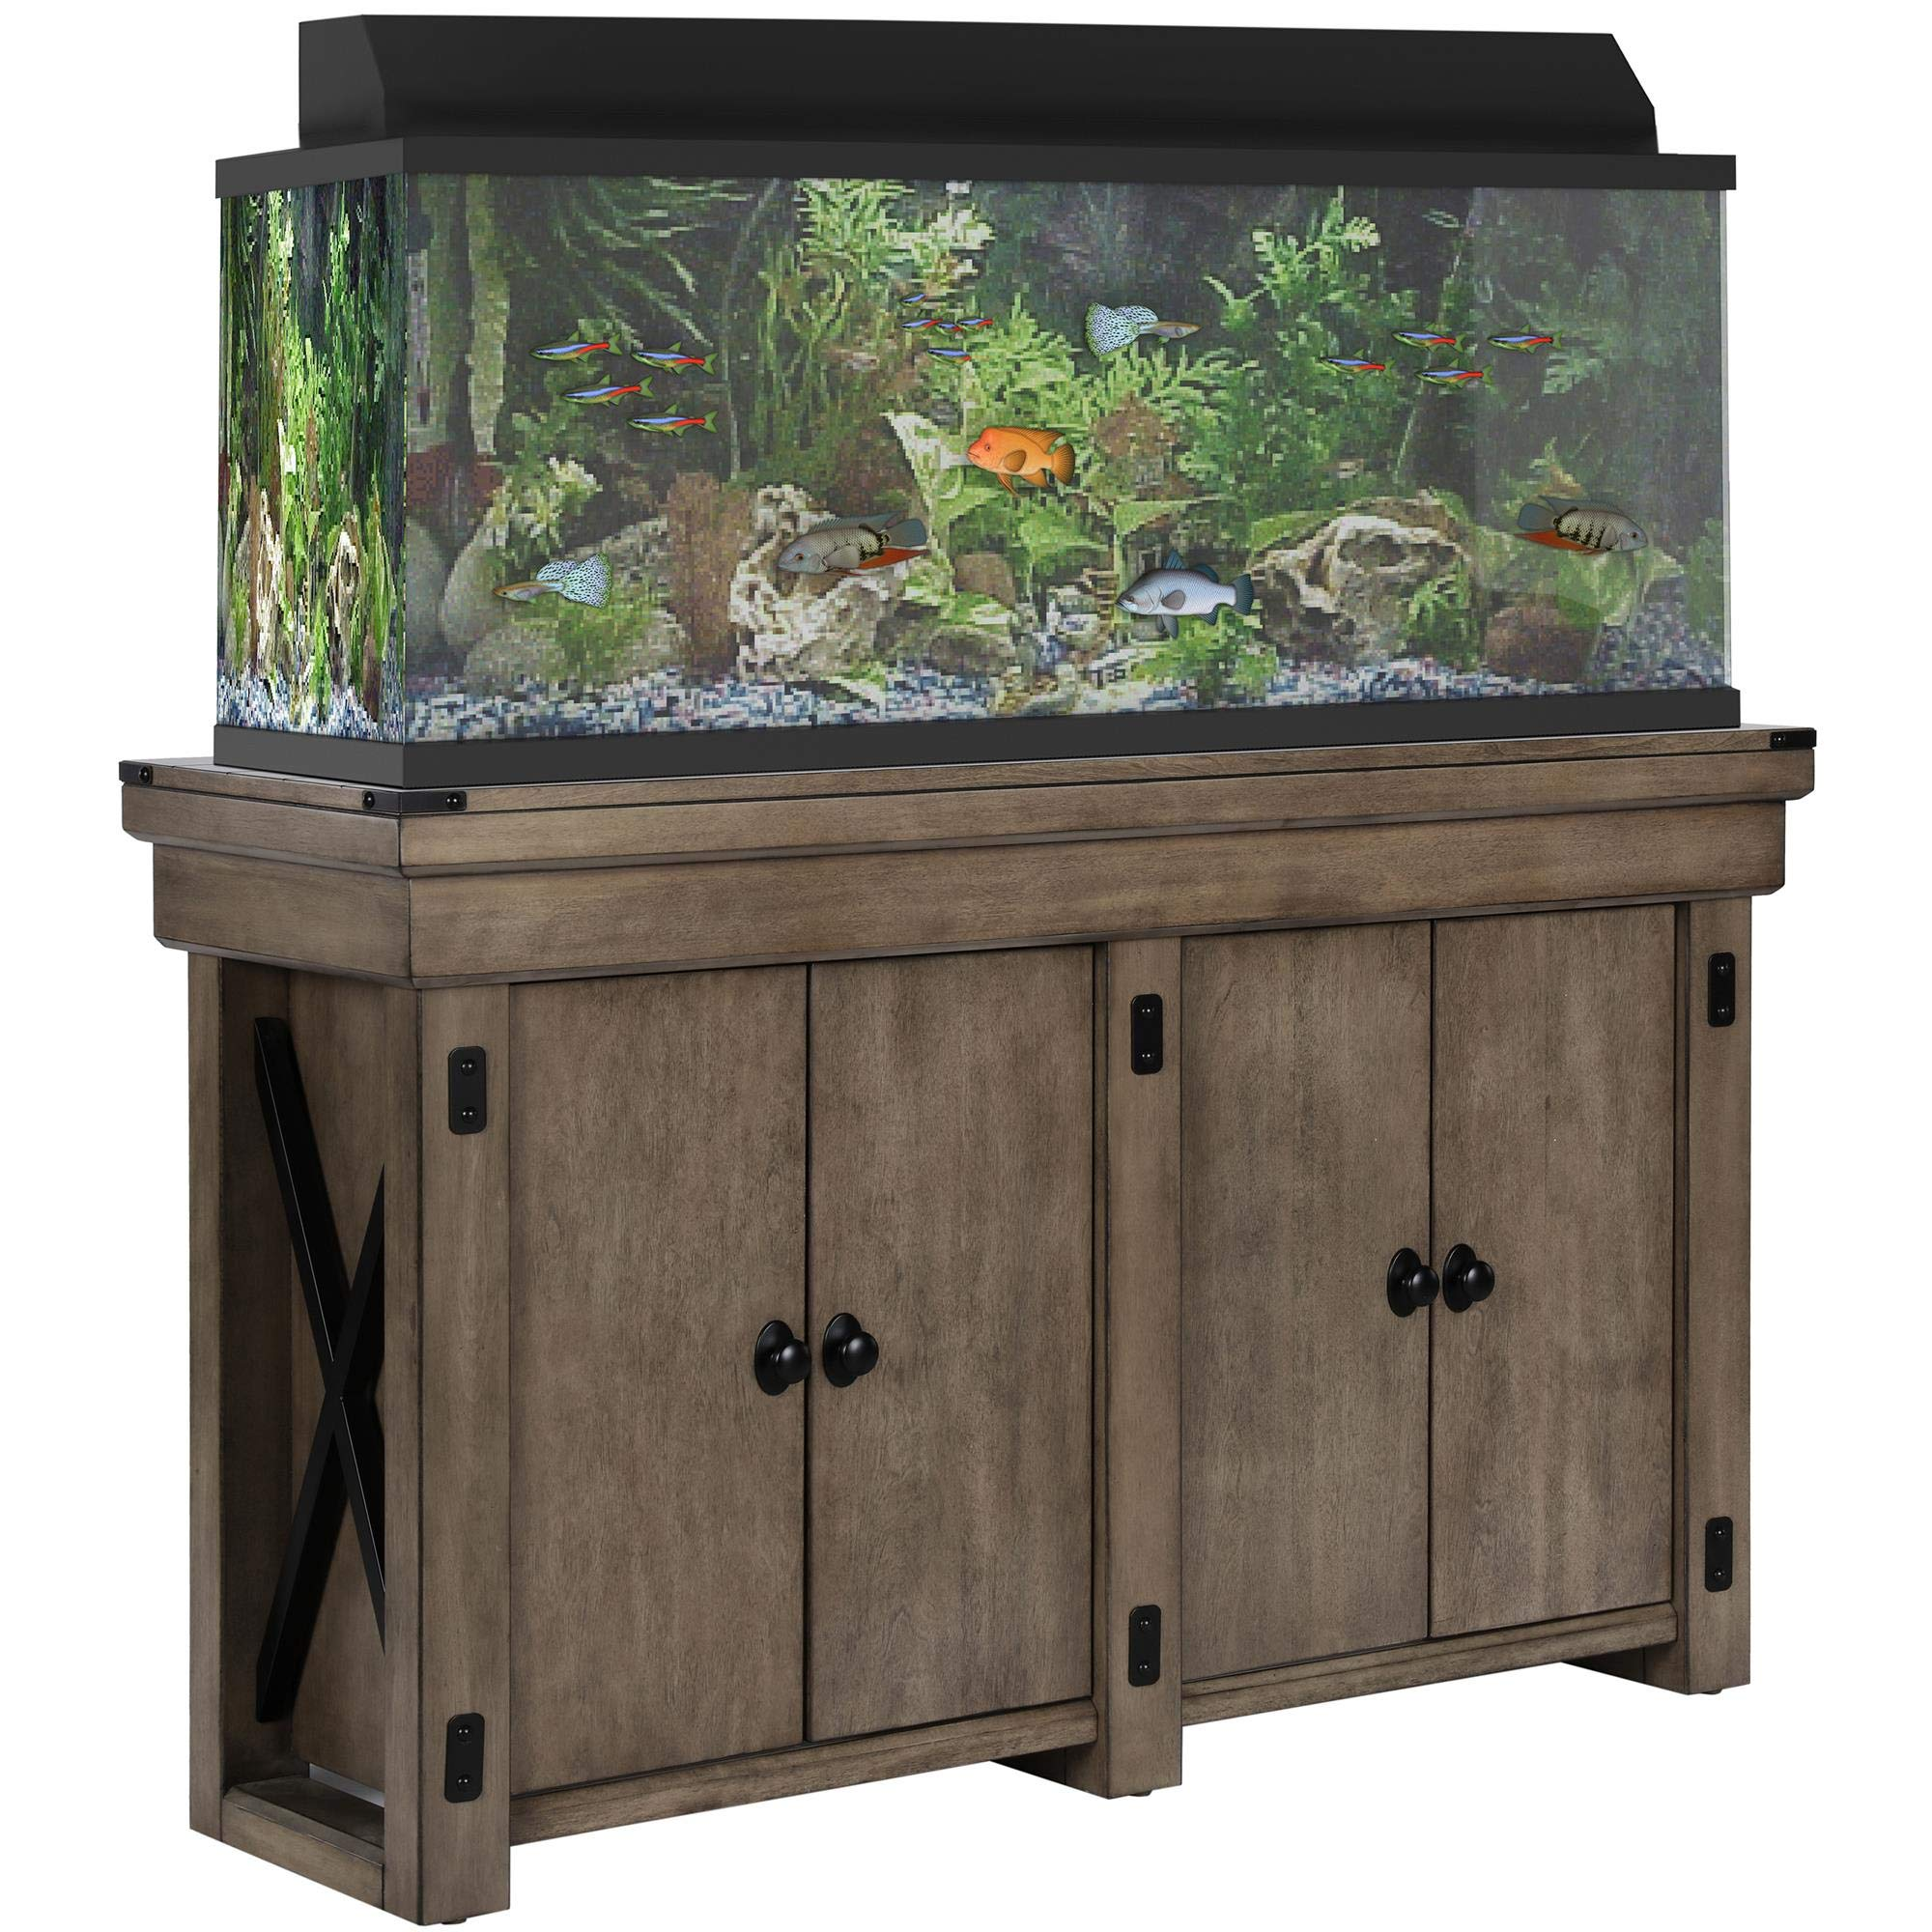 Ameriwood Home  Wildwood Aquarium Stand, 55 gallon, Rustic Gray by Ameriwood Home